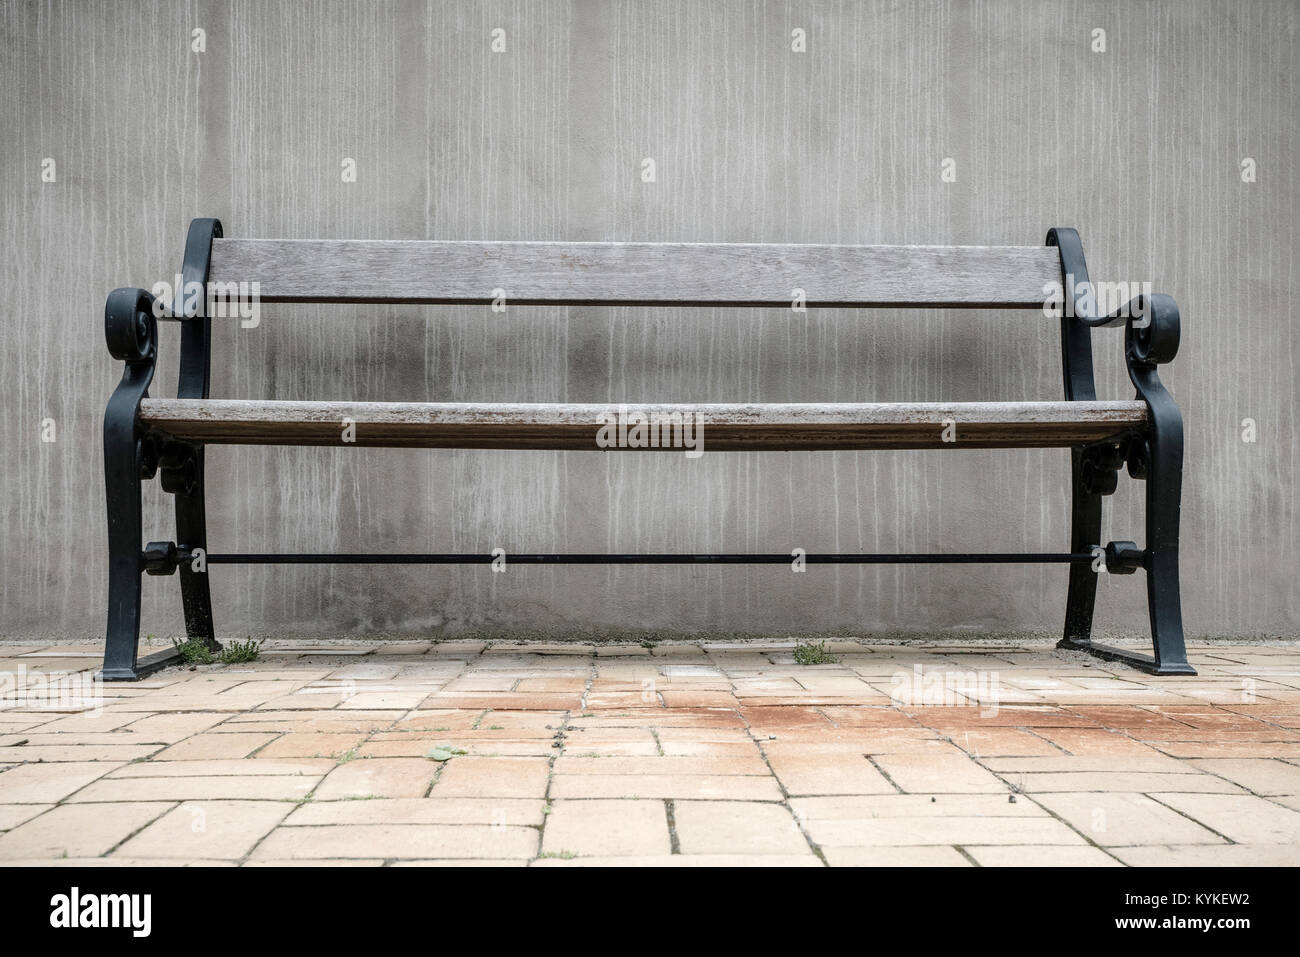 Wooden bench in vintage style on a terrace with a large concrete wall - Stock Image